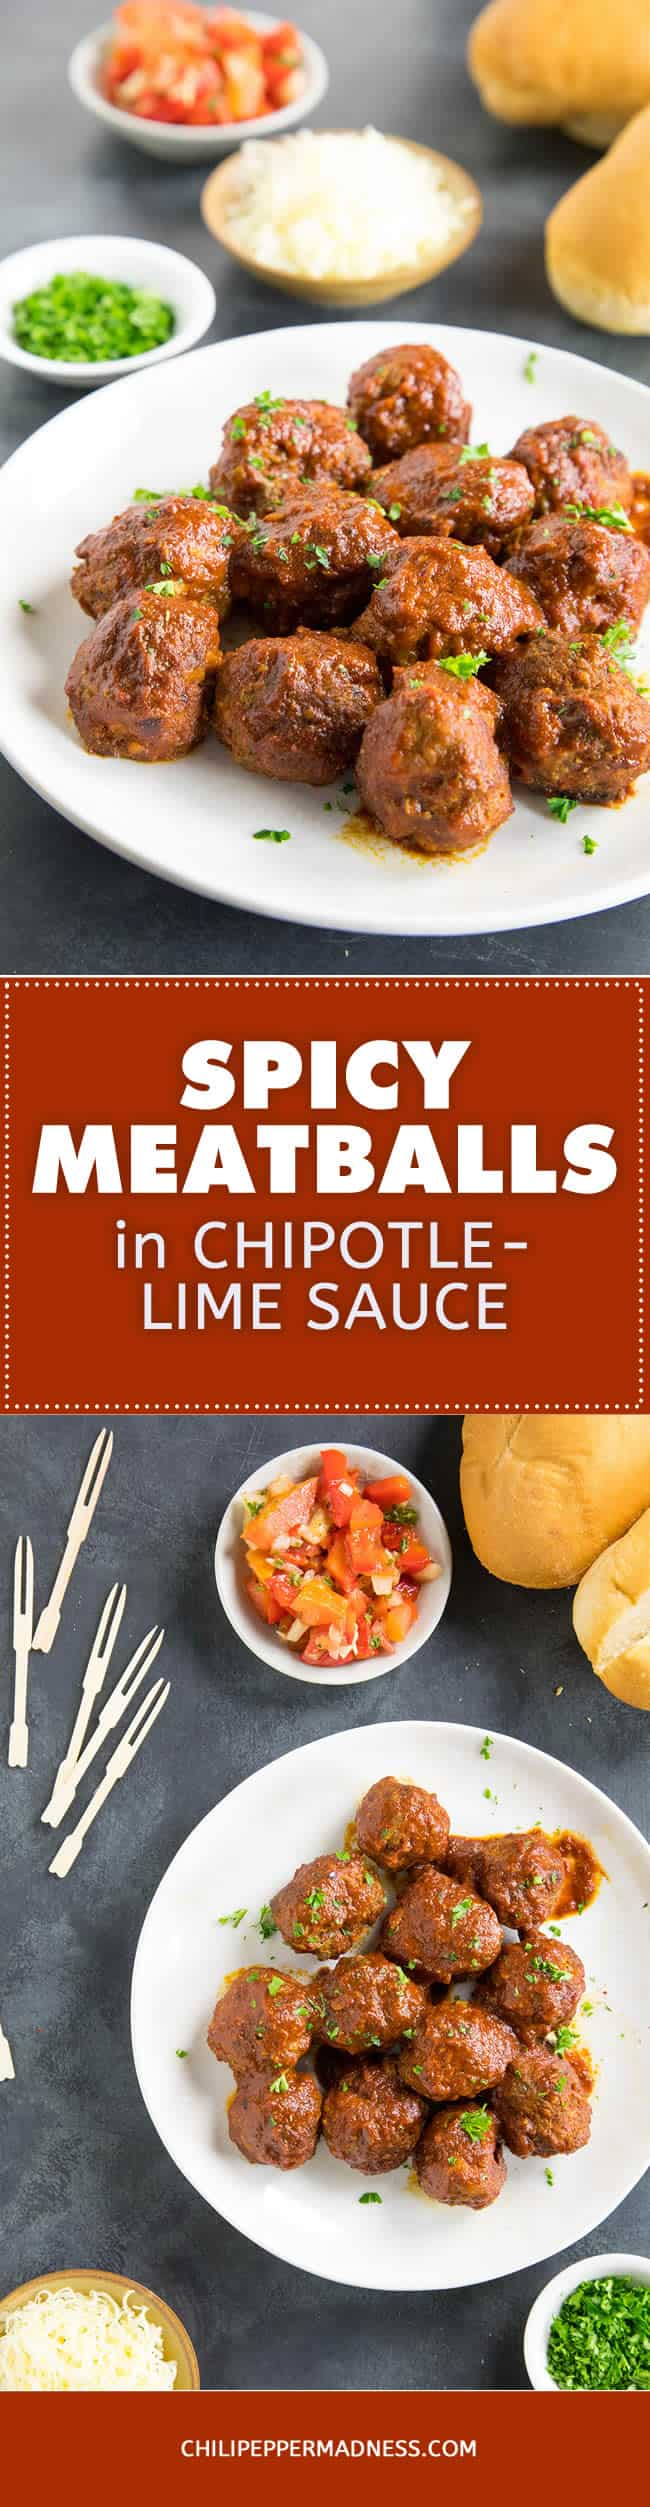 Spicy Meatballs in Chipotle-Lime Sauce - Recipe | ChiliPepperMadness.com #meatballs #chipotle #appetizer #spicyfood